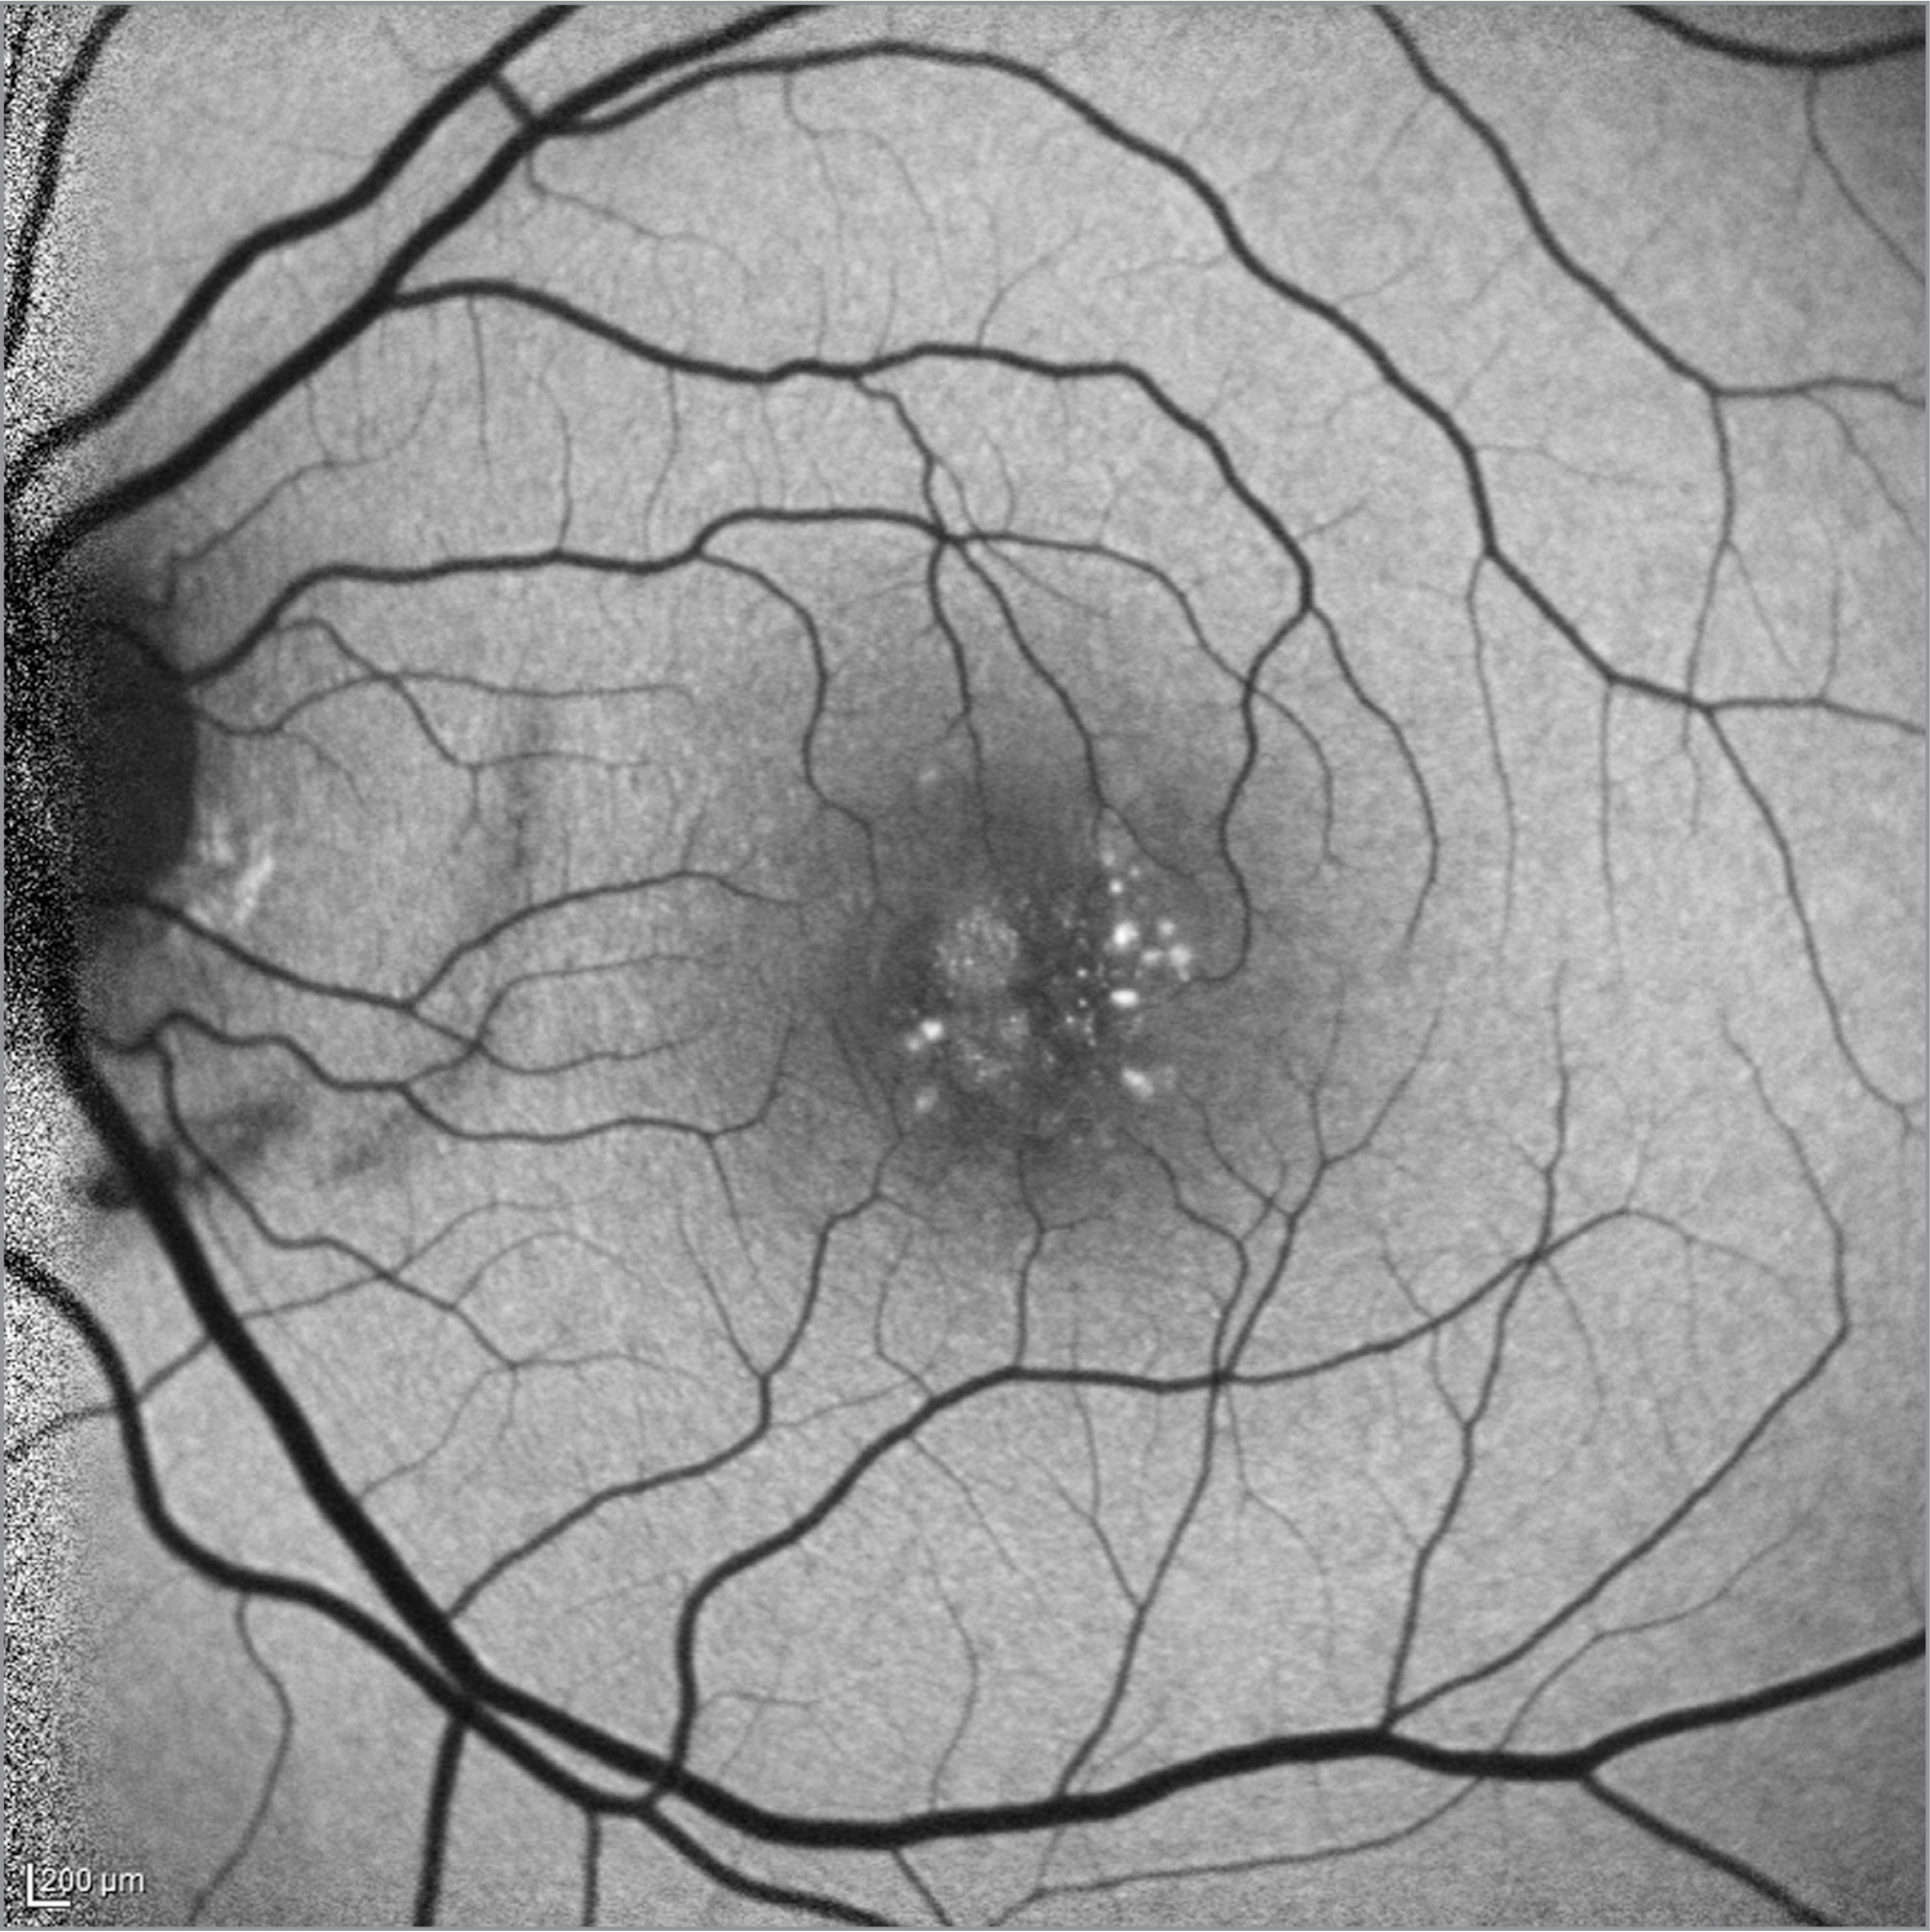 Fundus autofluorescence of the left eye at presentation shows areas of central hyperautofluorescence corresponding to the lamellar macular hole and focal areas of elongated photoreceptor outer segments overlying a nonconforming focal choroidal excavation. There is a crescentic area of hypoautofluorescence nasally corresponding to an area of choroidal rupture.